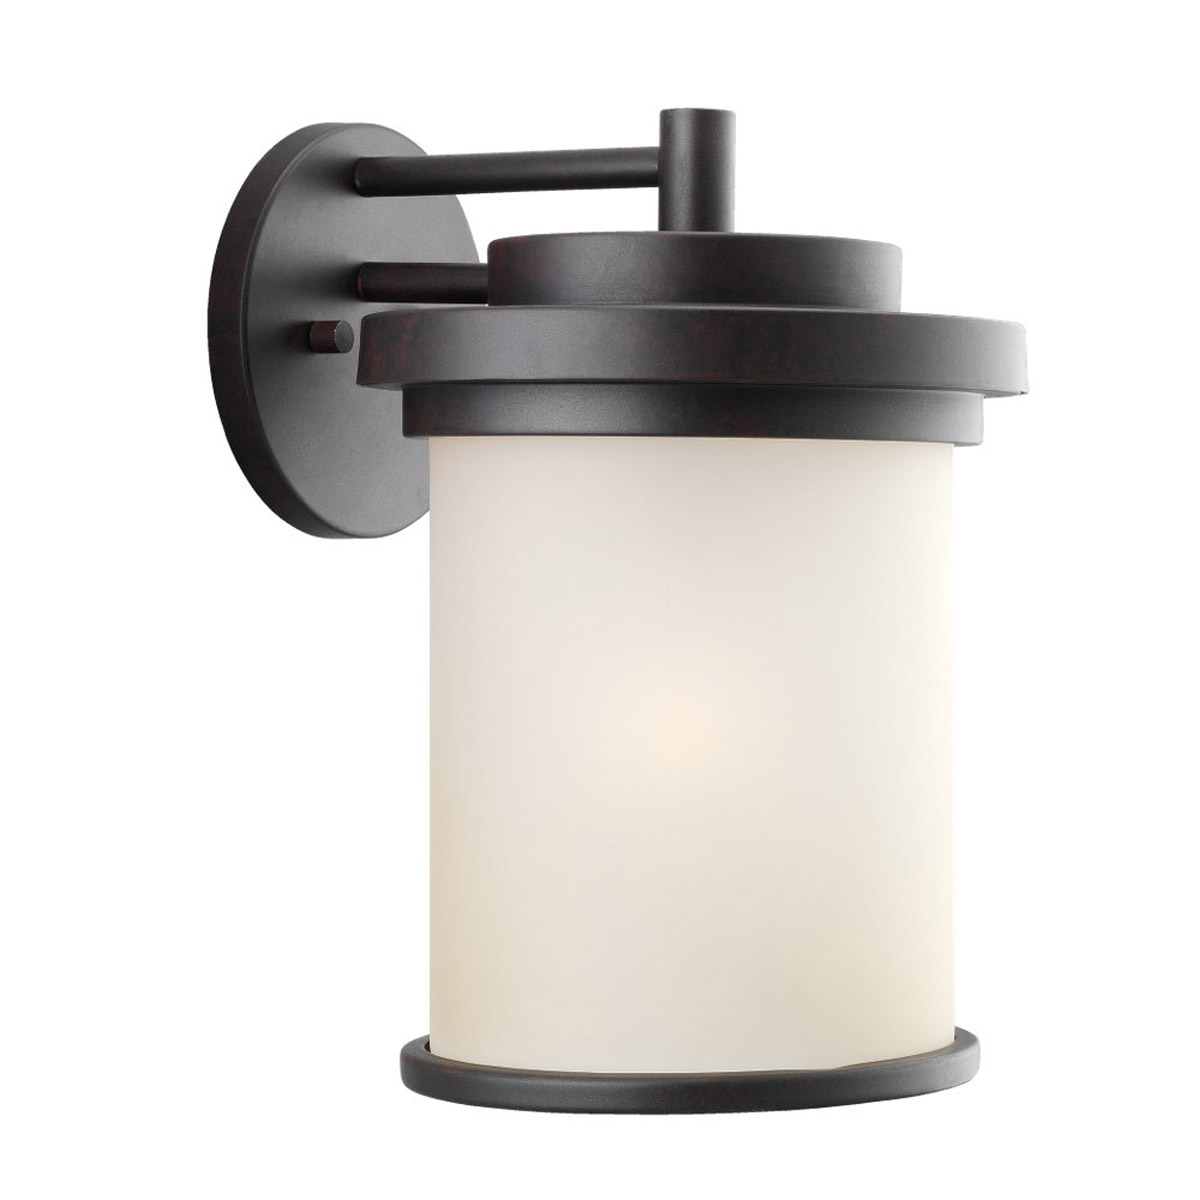 Sea Gull 88662-814 Winnetka 1 Light 15 inch Misted Bronze Outdoor Wall Lantern in Cafe Tint Glass photo